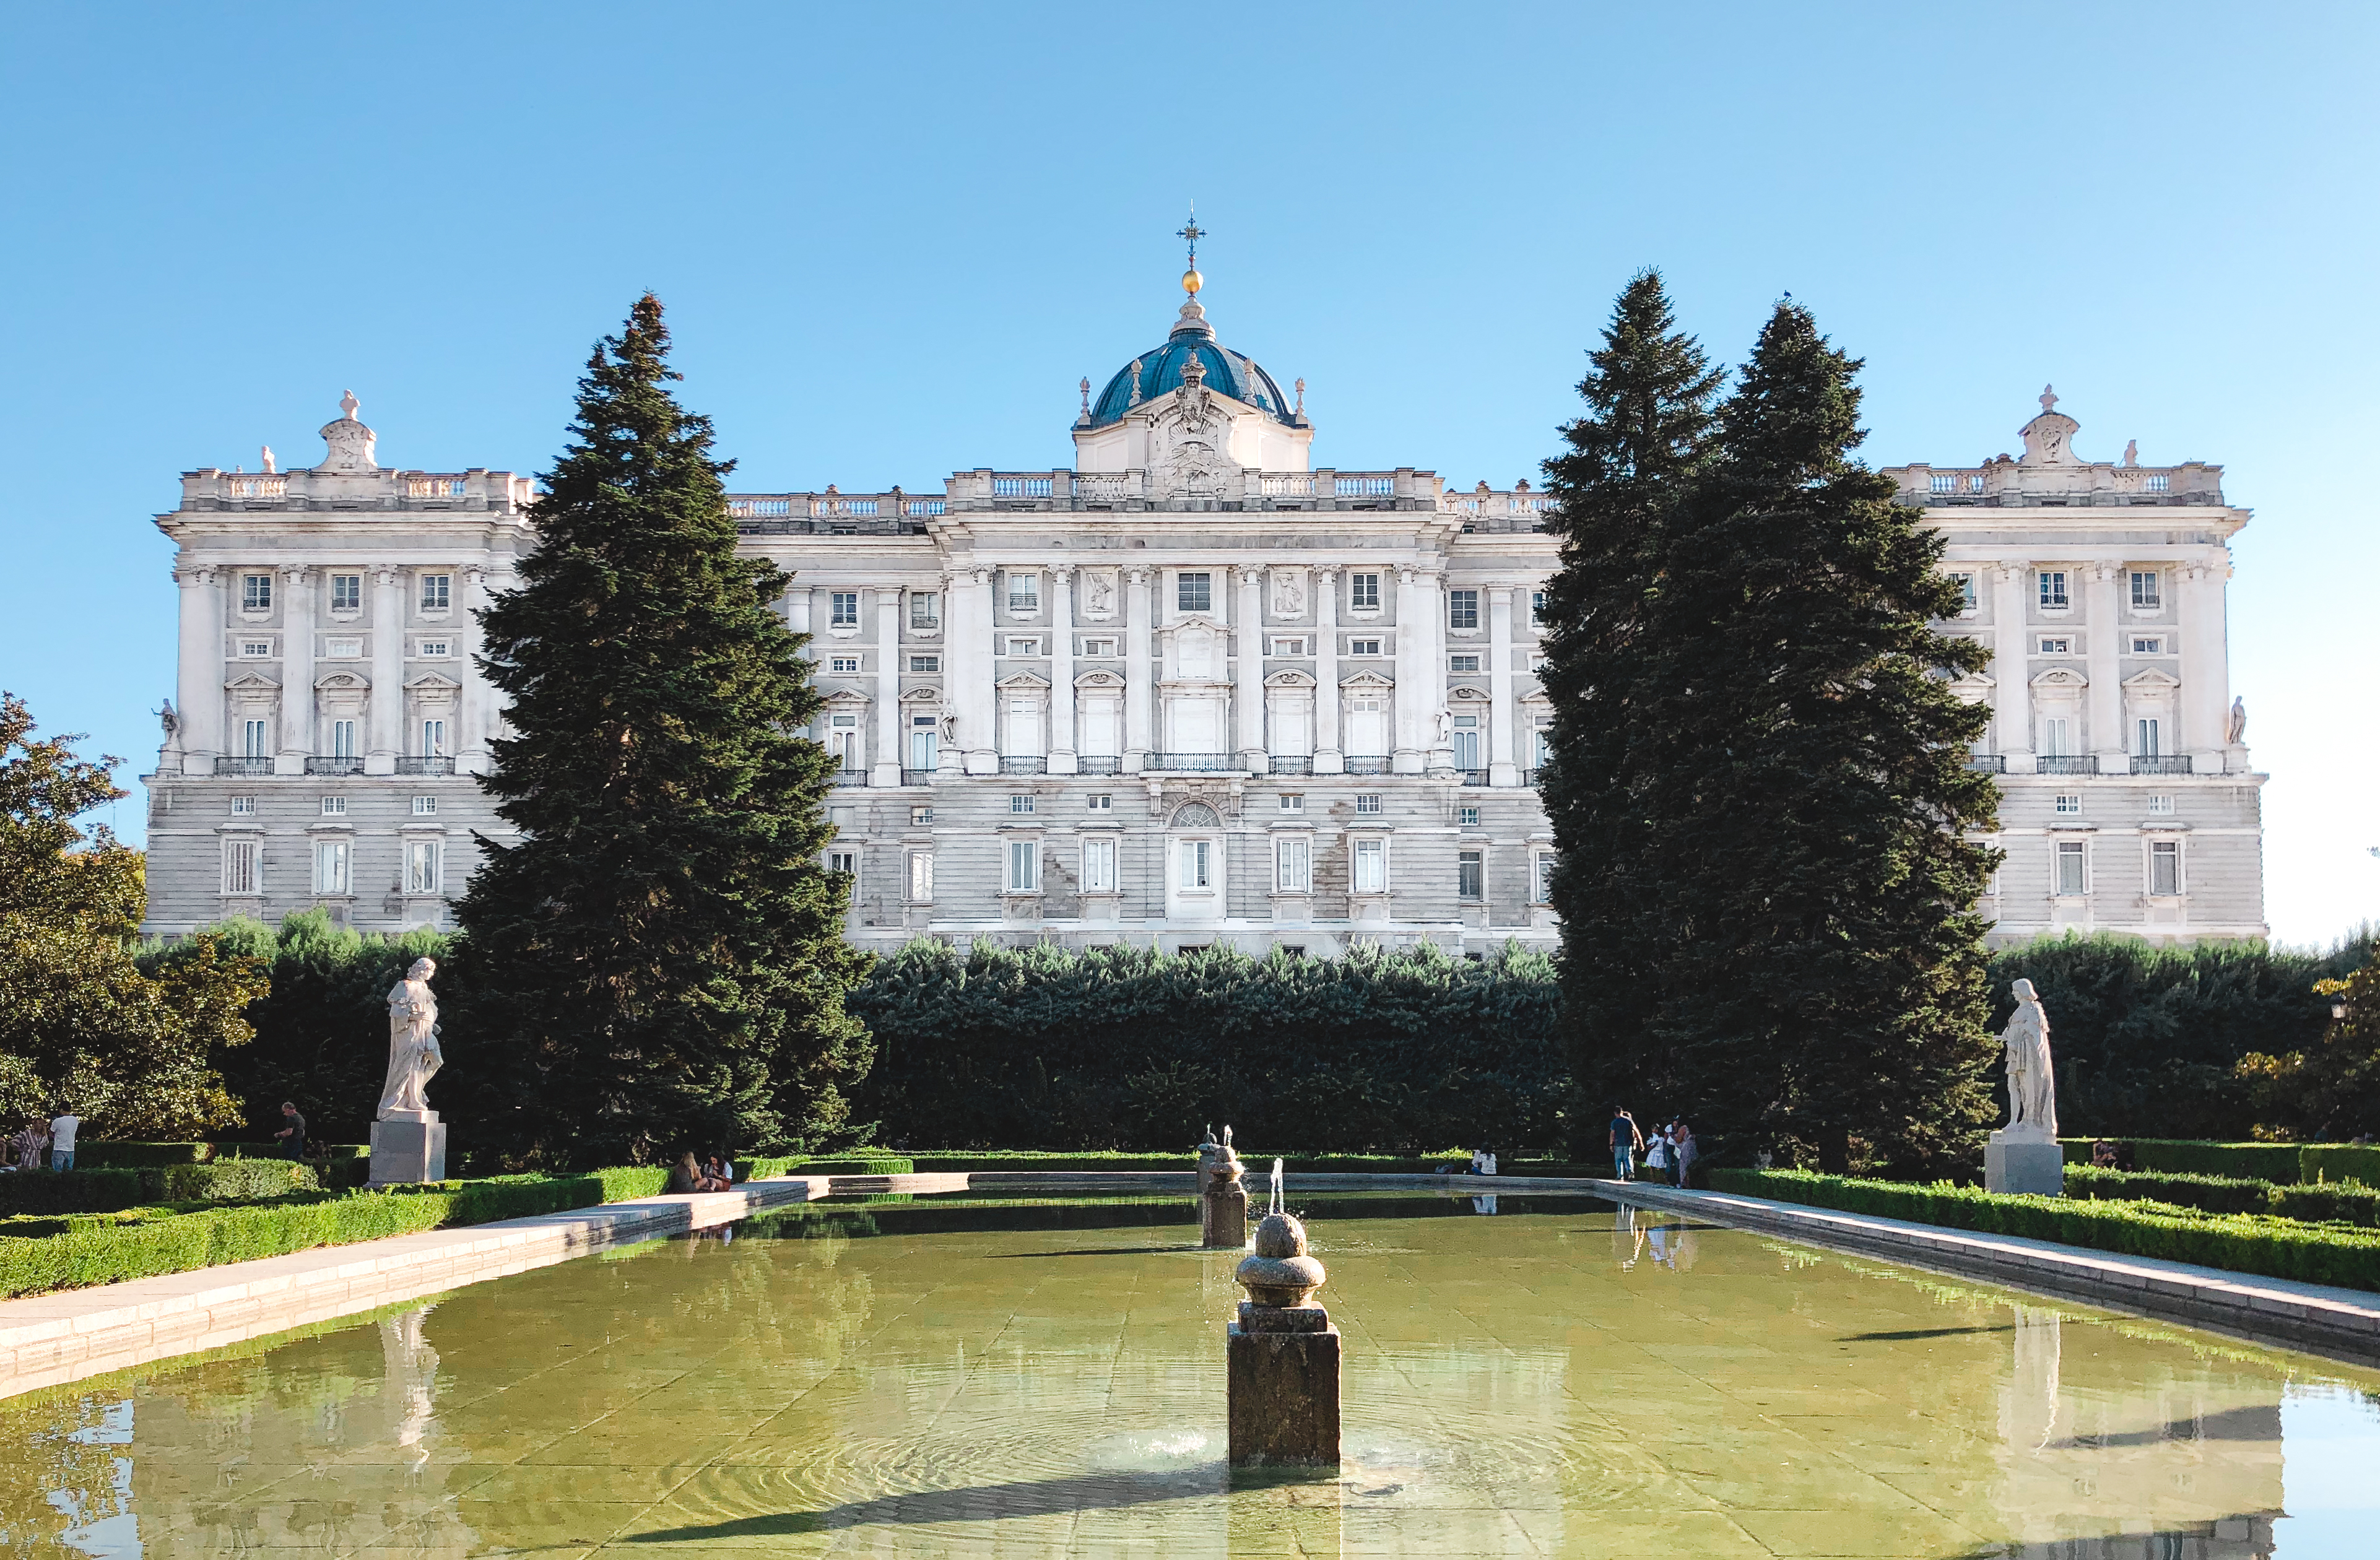 muslim-travel-guide-Madrid-Spain-things-to-do-Royal-Palace